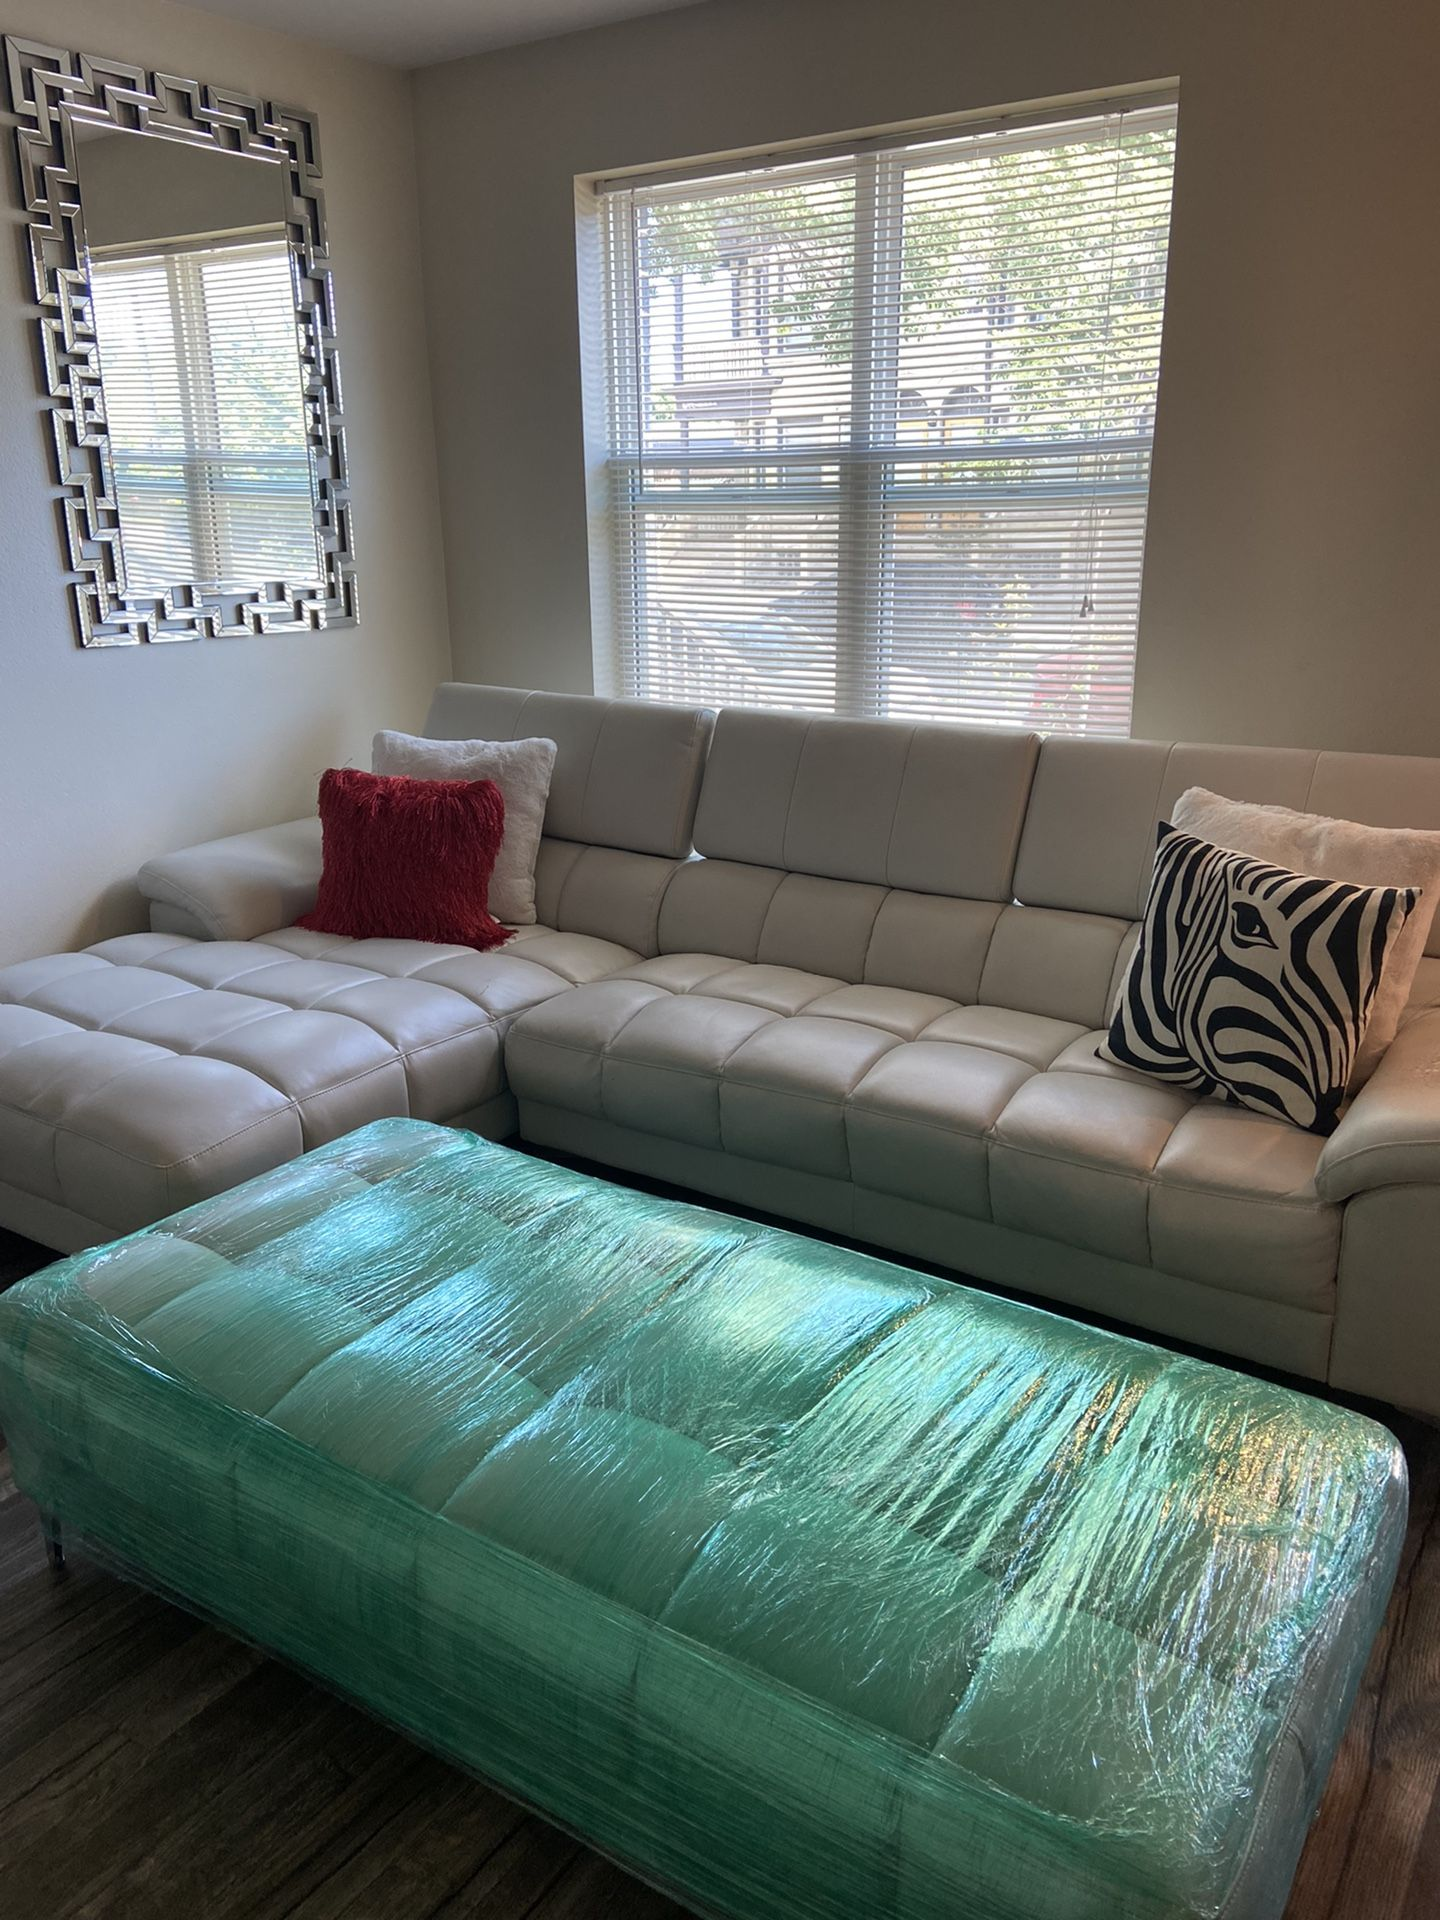 Off-White Faux Leather Sectional (couch + chaise + ottoman)